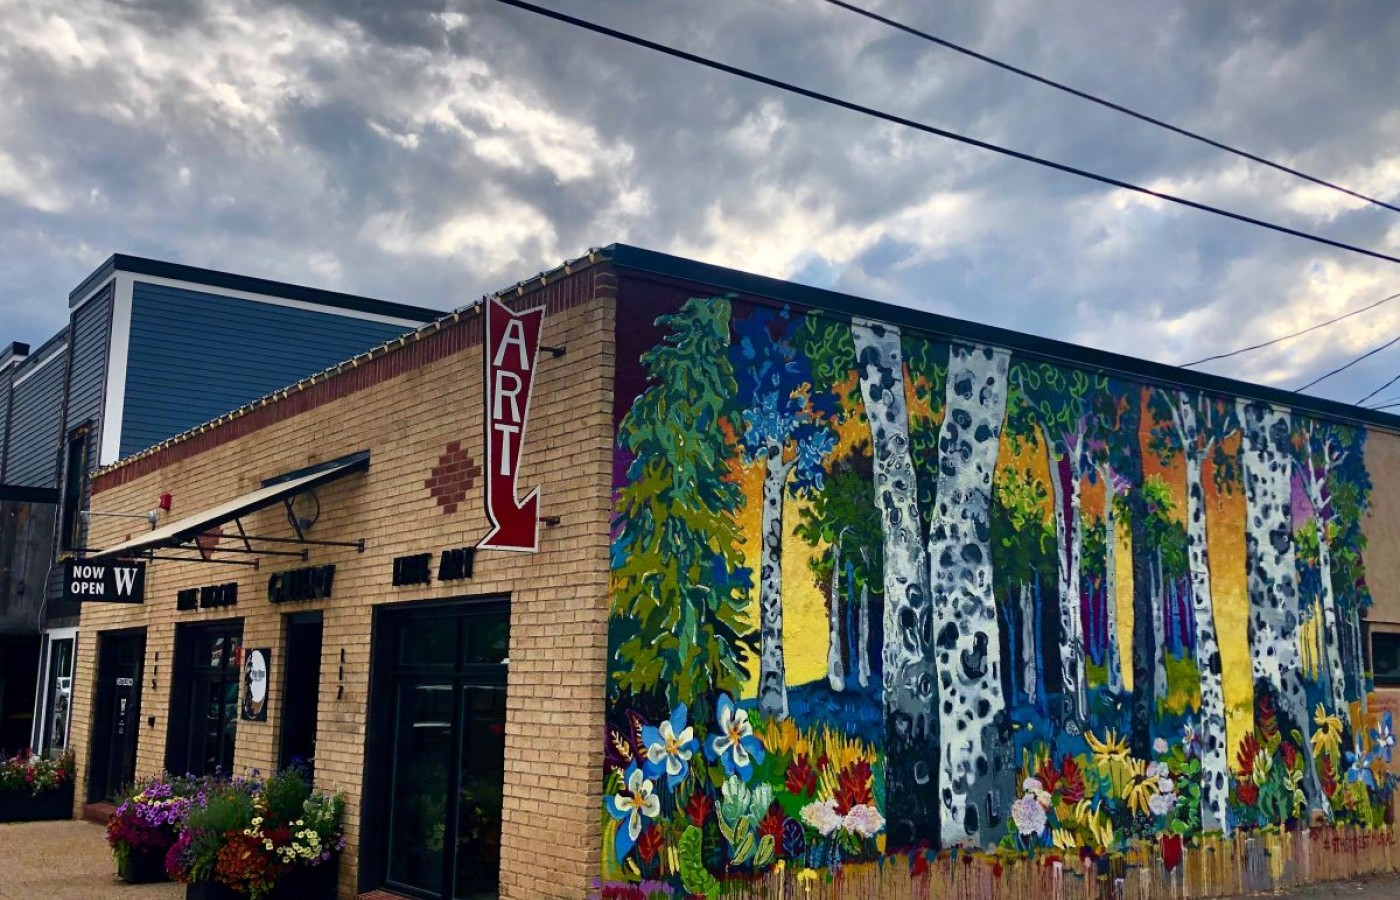 Downtown Steamboat Springs plays host to the monthly First Friday Artwalk